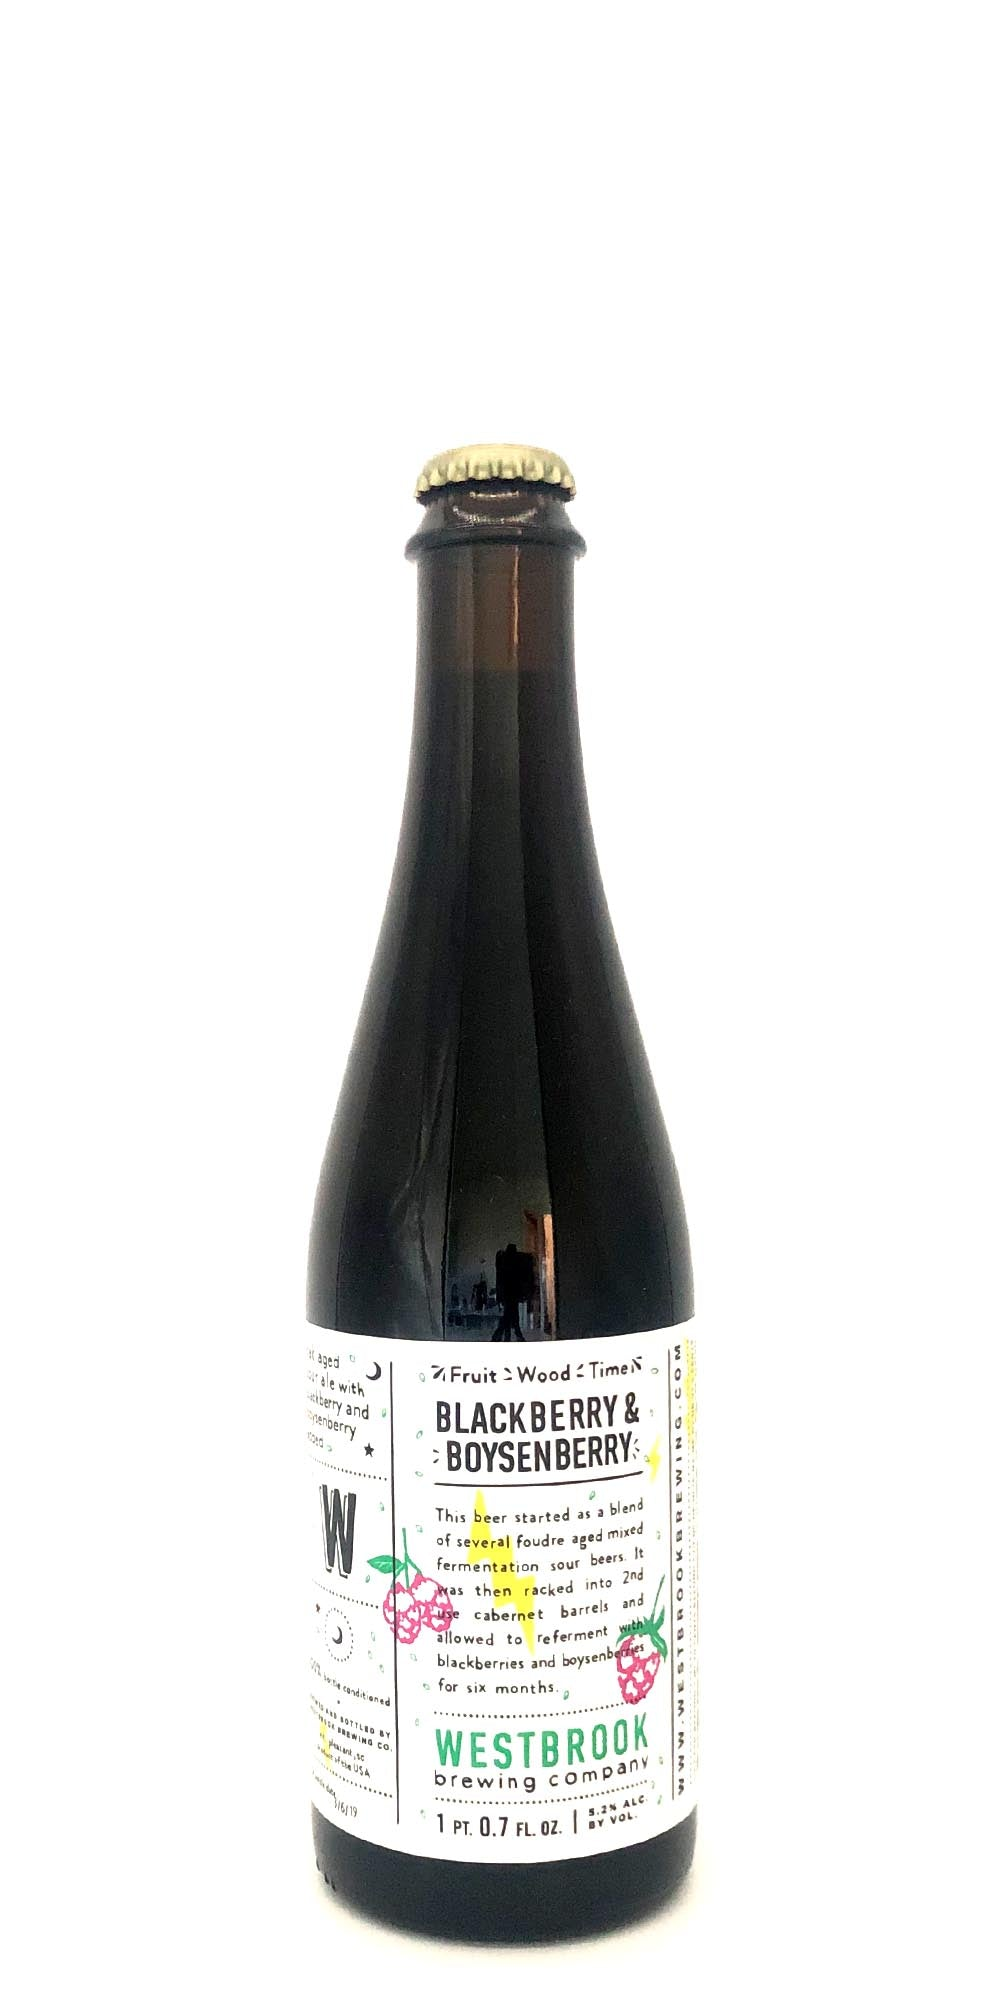 Westbrook Brewing - Fruit/Wood/Time Blackberry Boysenberry - 500ml - Drikbeer - Order Craft Beer Online